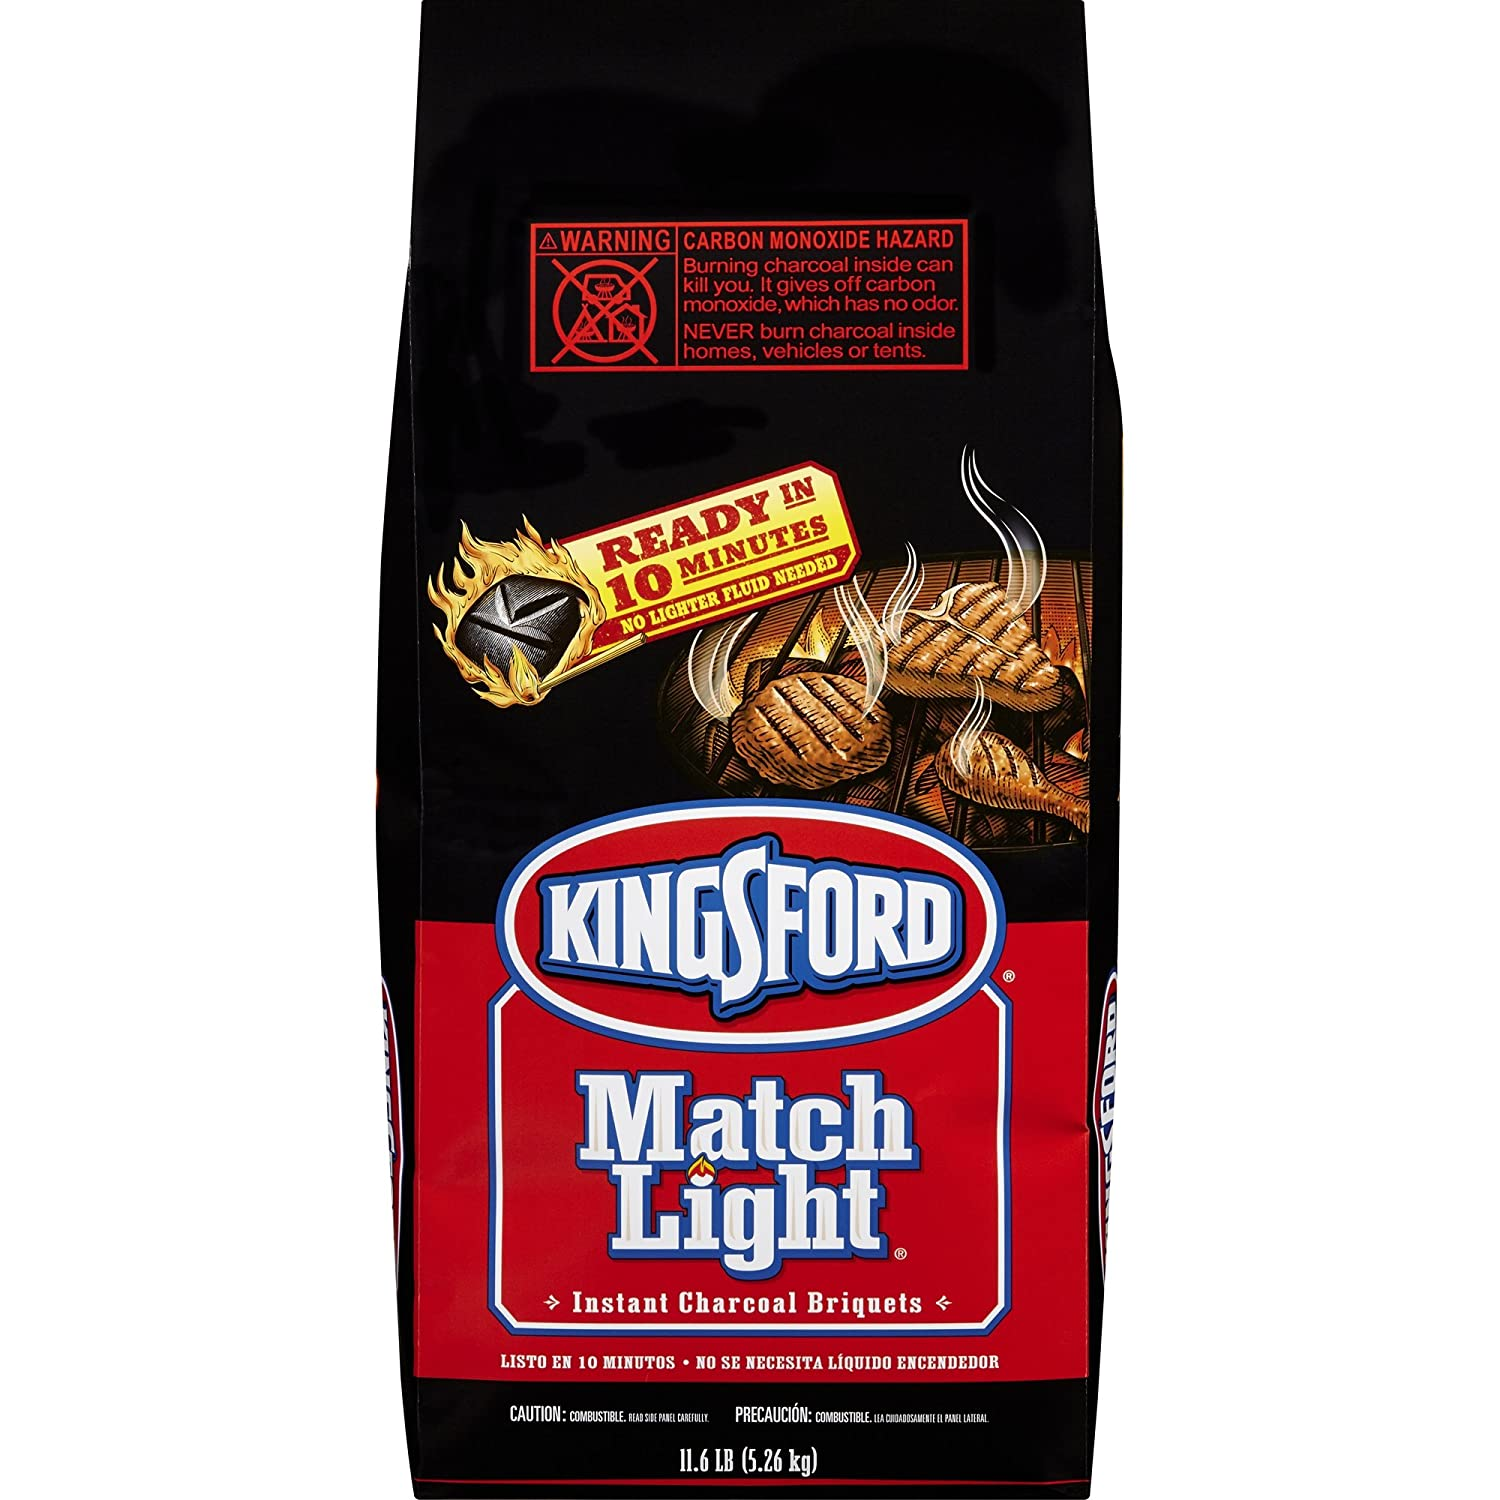 Charcoal Grill Briquet Kingsford Match Light Instant Charcoal Briquettes 11.6 lb 2pk